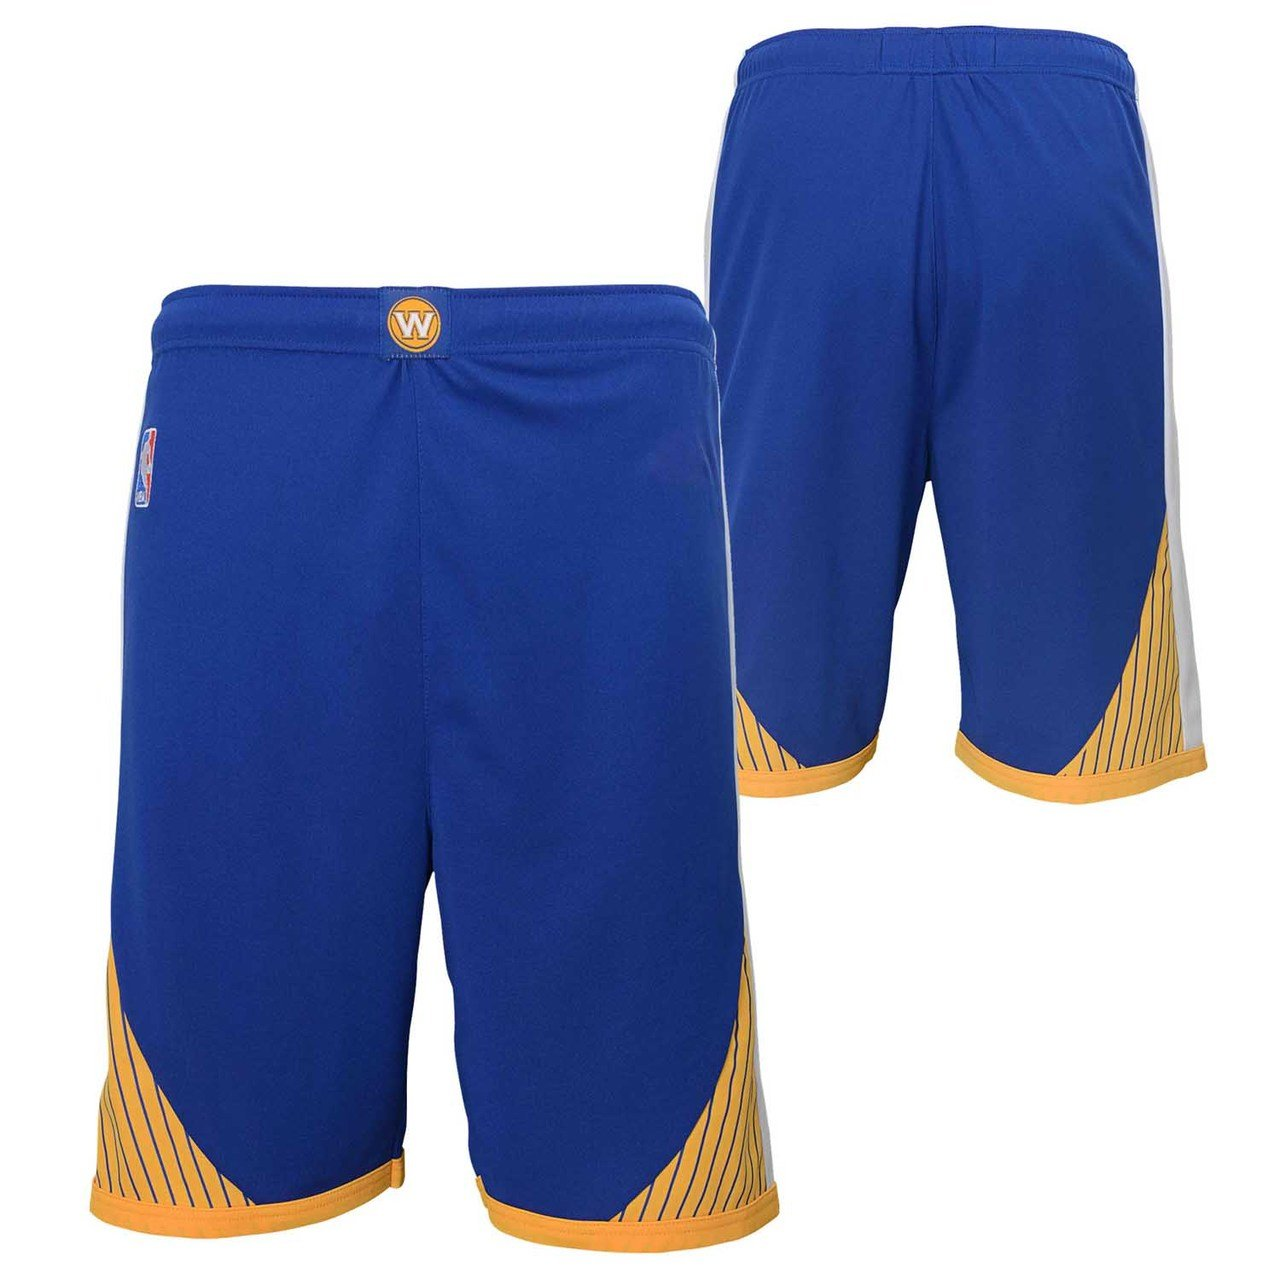 OuterStuff SHORTS ボーイズ B075MPD32C  X-large (18-20)